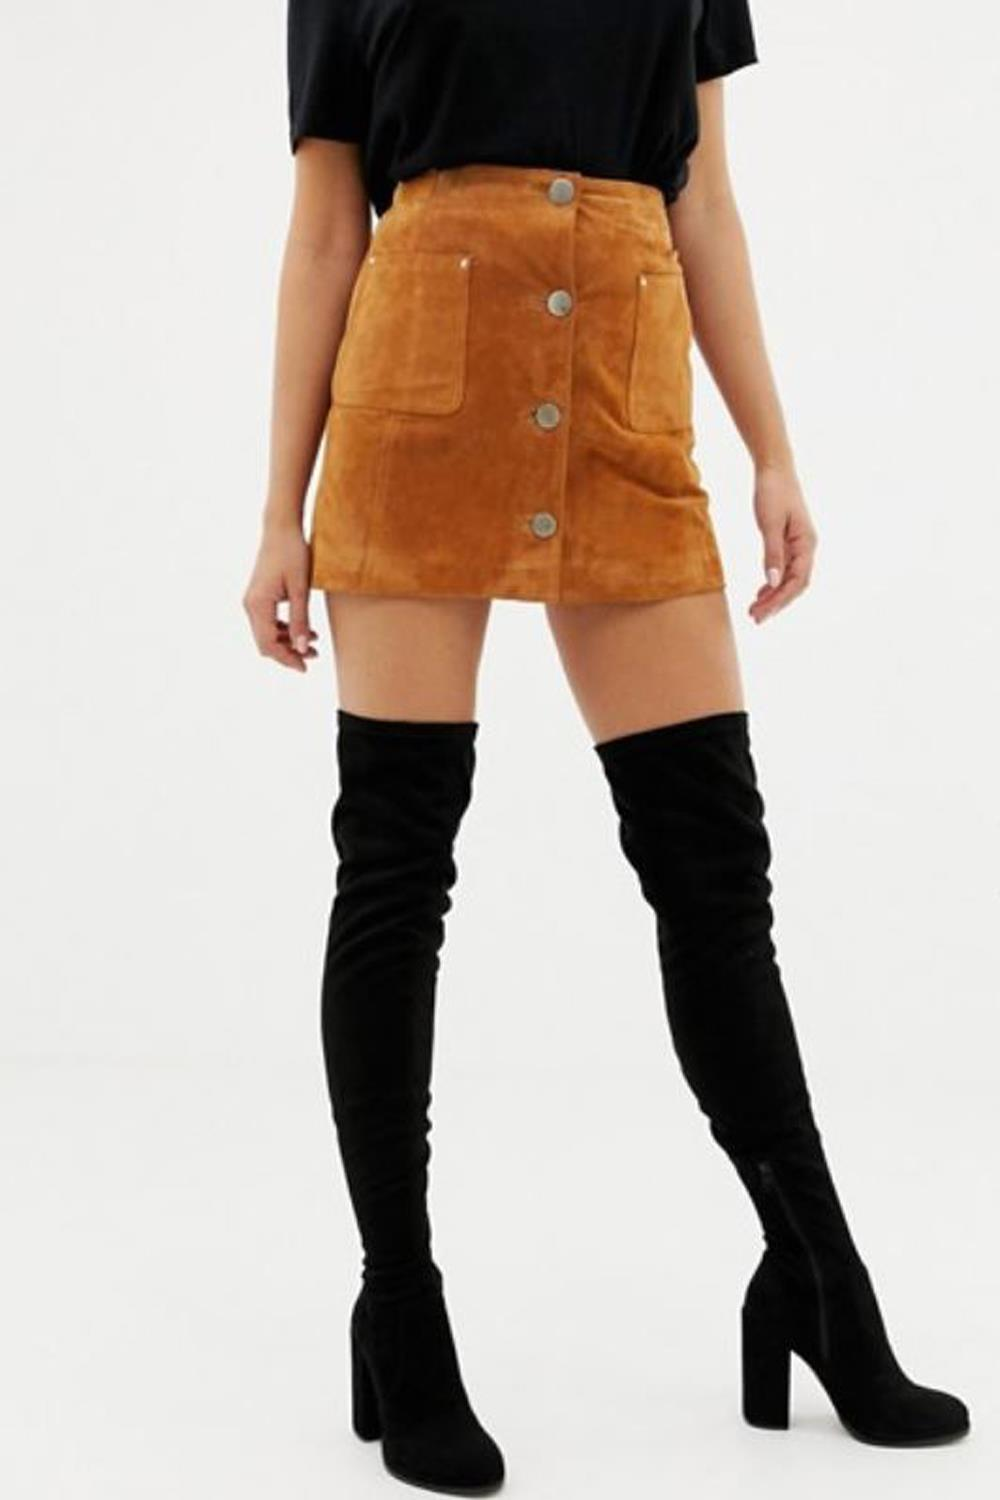 novedades asos botas over the knee. Over the knee